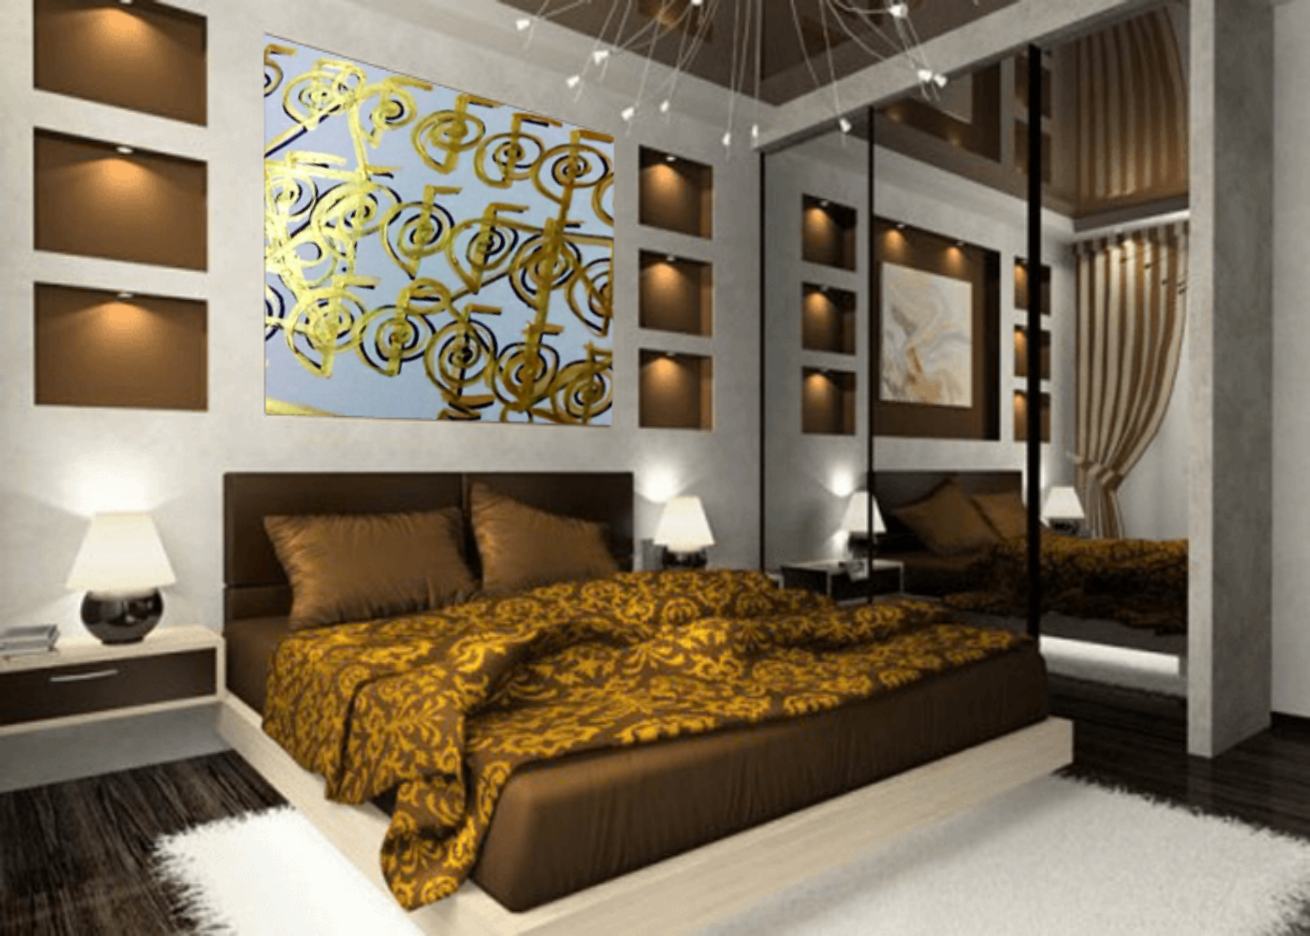 Feng shui simple cures 3 decor mistakes with golden for Spiritual bedroom designs